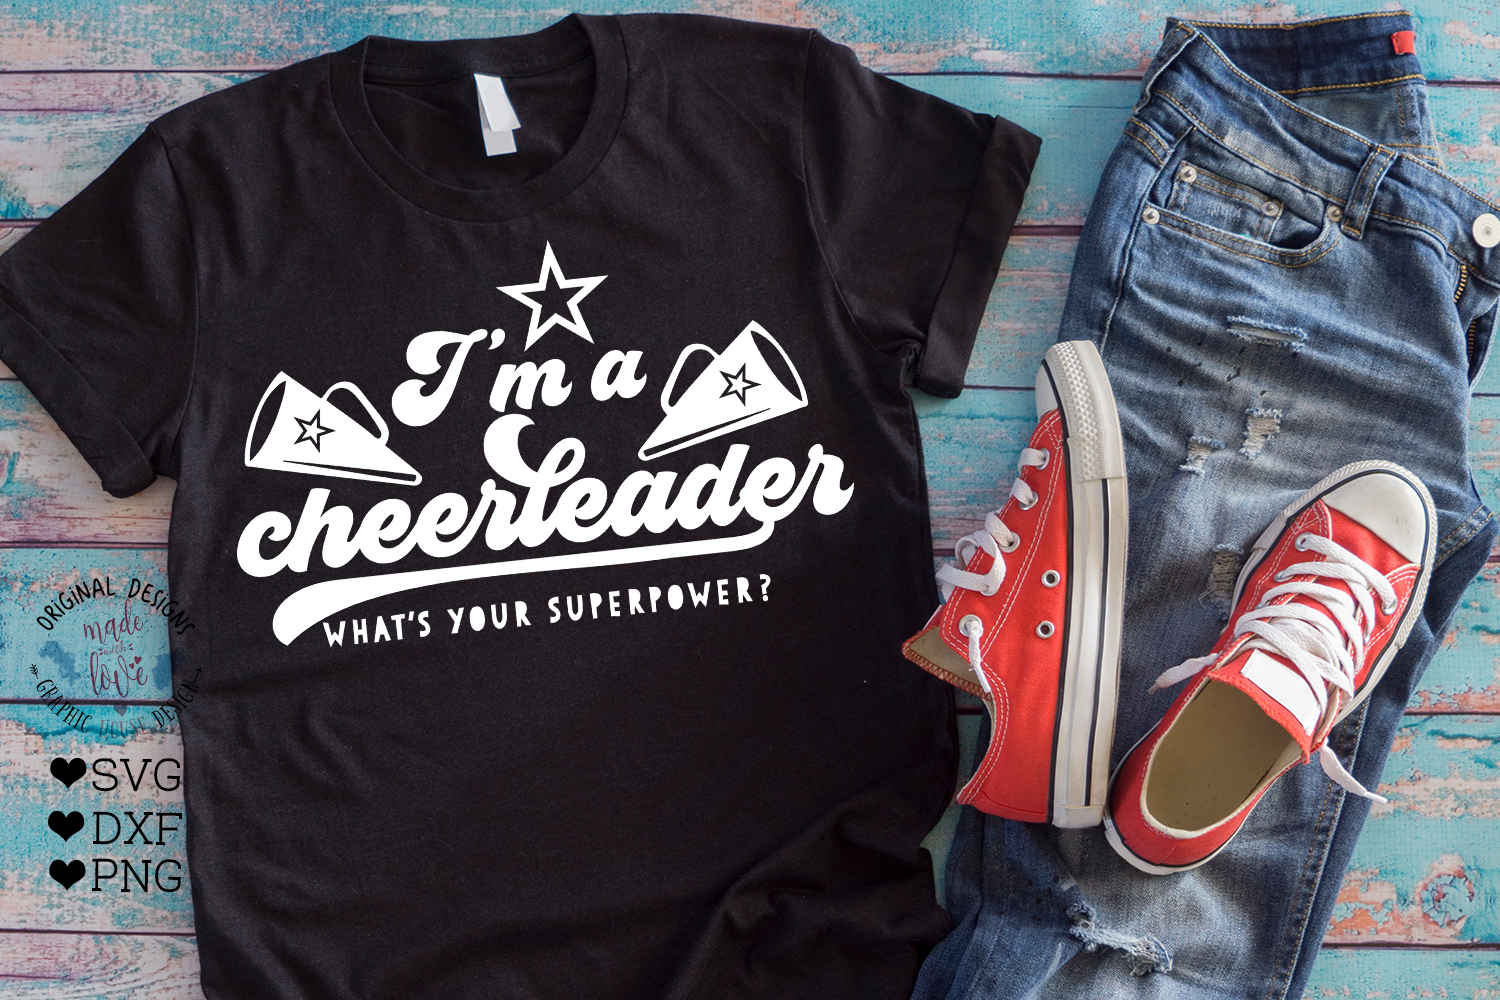 Cheerleader SVG - I'm a Cheerleader, What's your Superpower example image 2